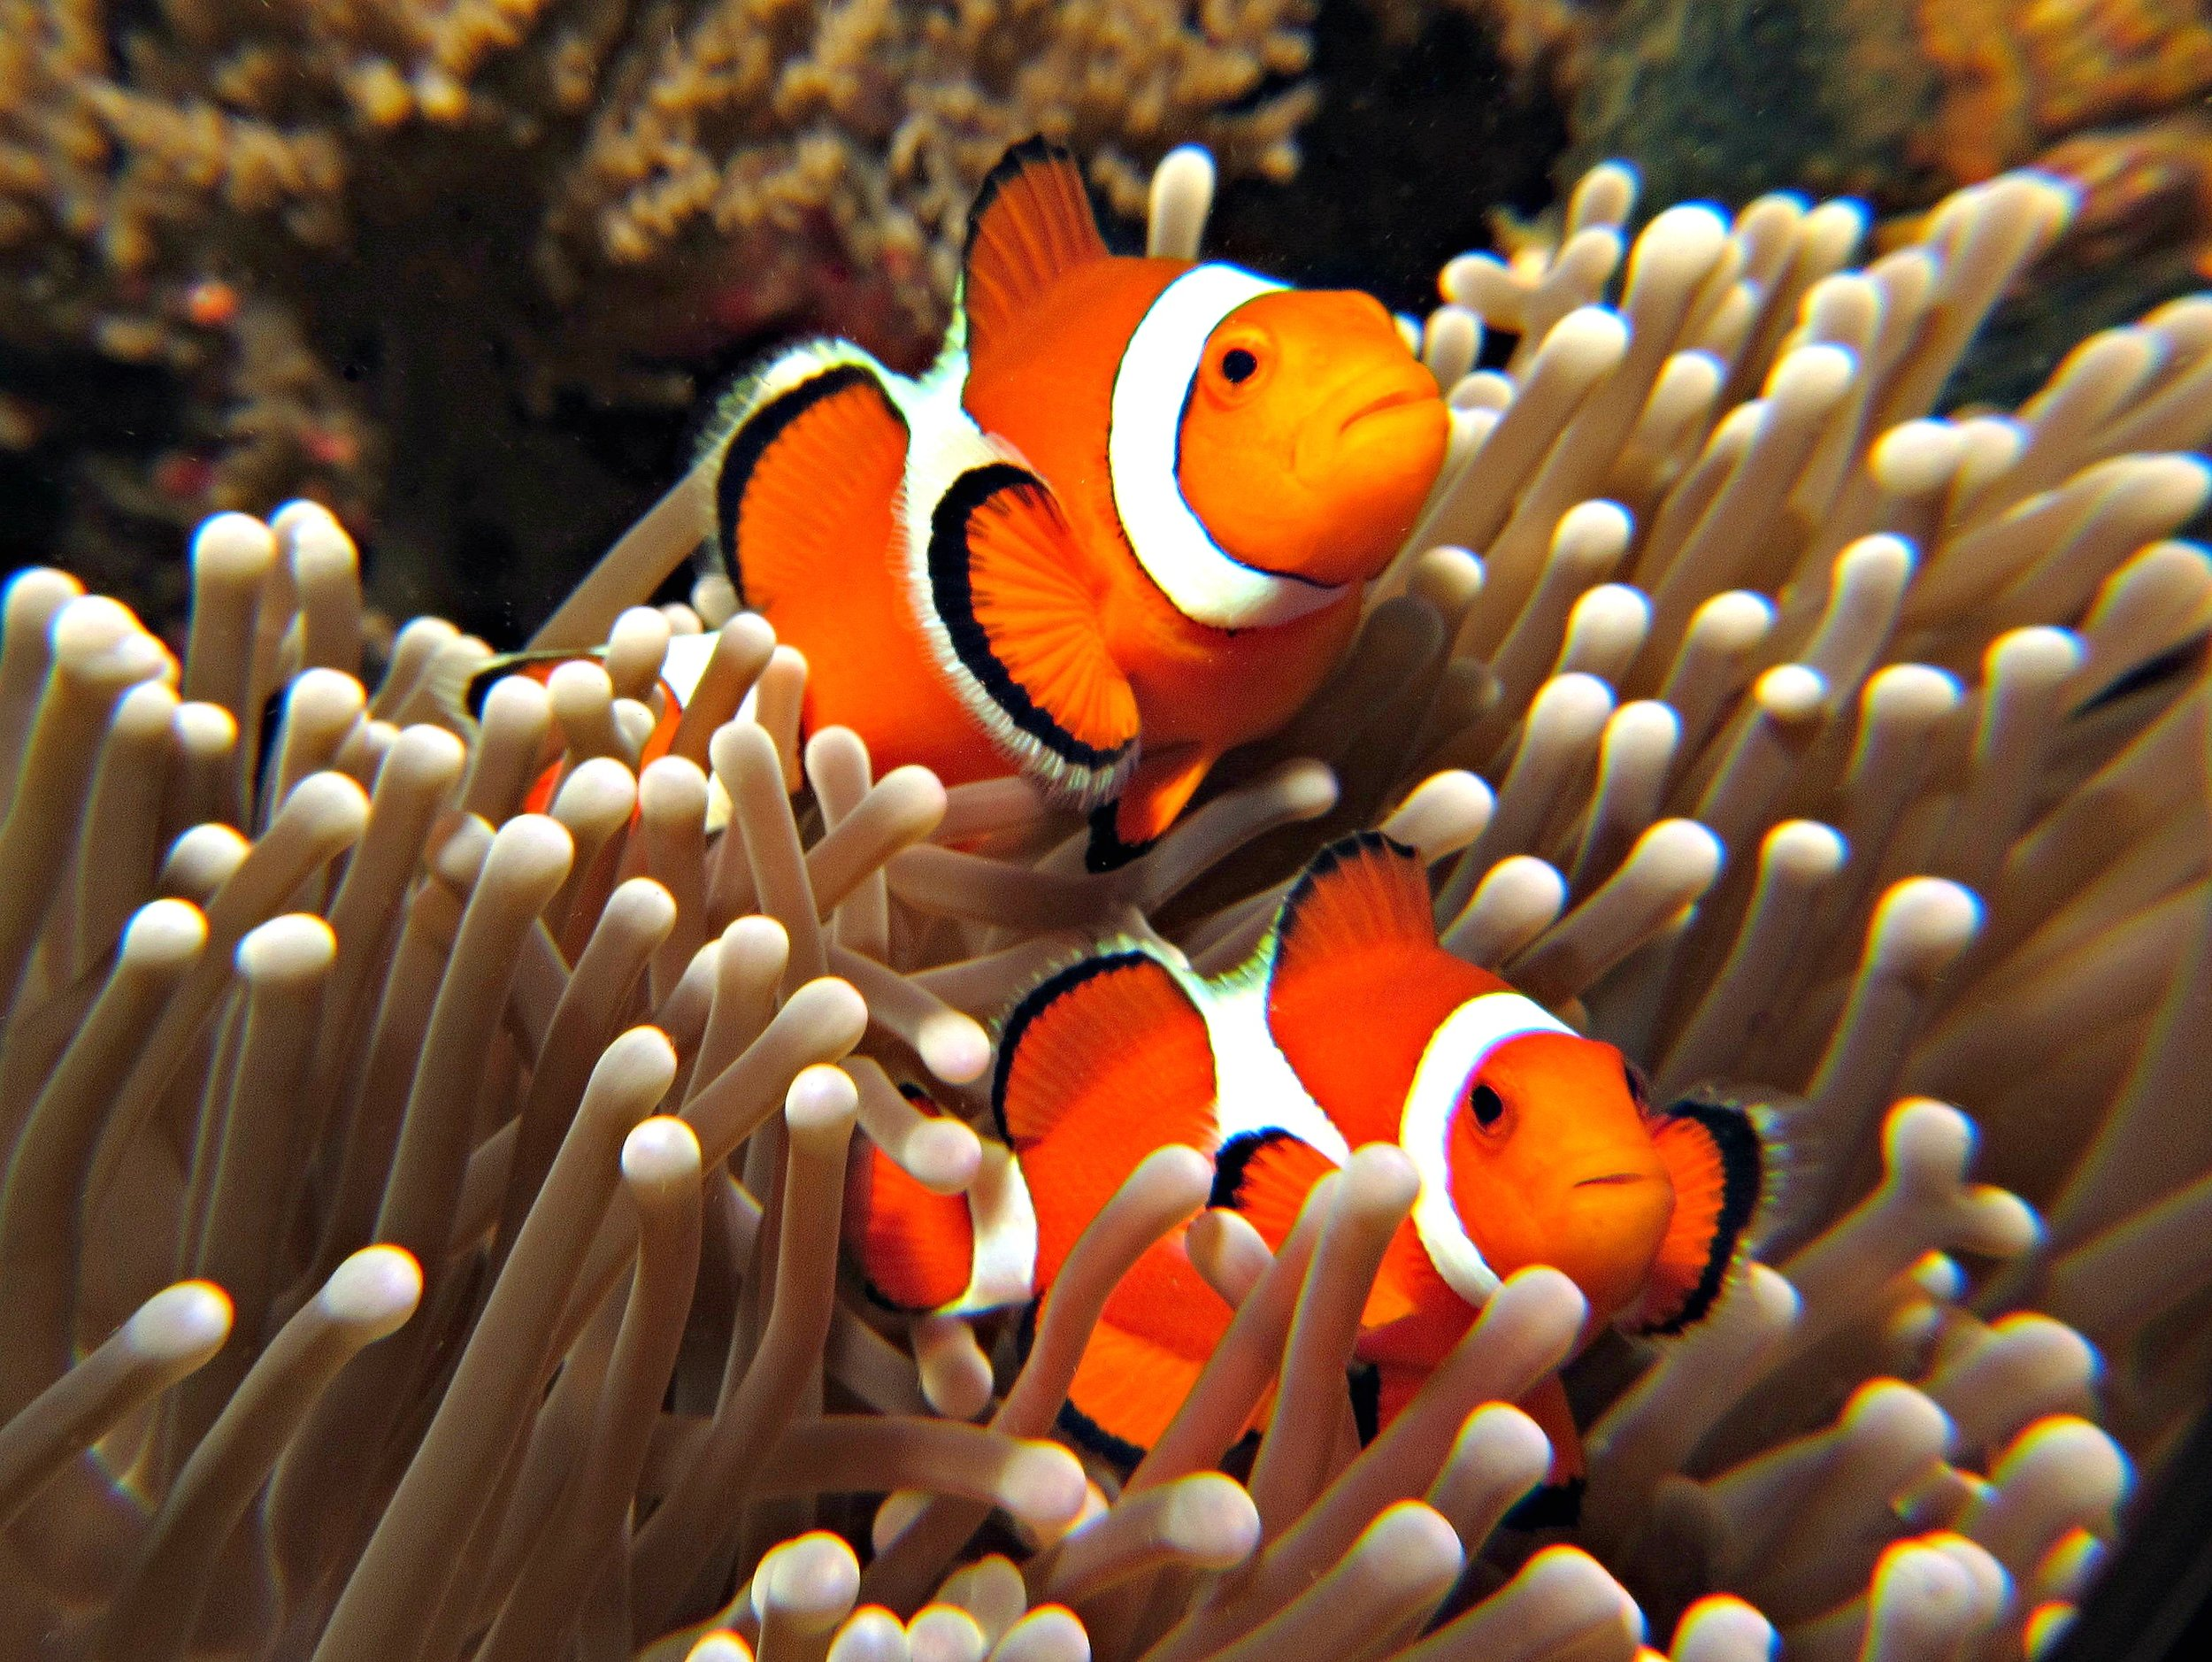 Clown fish are one of the many species of fishes that are able to change their sexual anatomy. The egoic conceptual mind likes to categorizes things into tidy boxes, but Life loves diversity and is far too fluid and nuanced for the egoic mind to understand this reality.